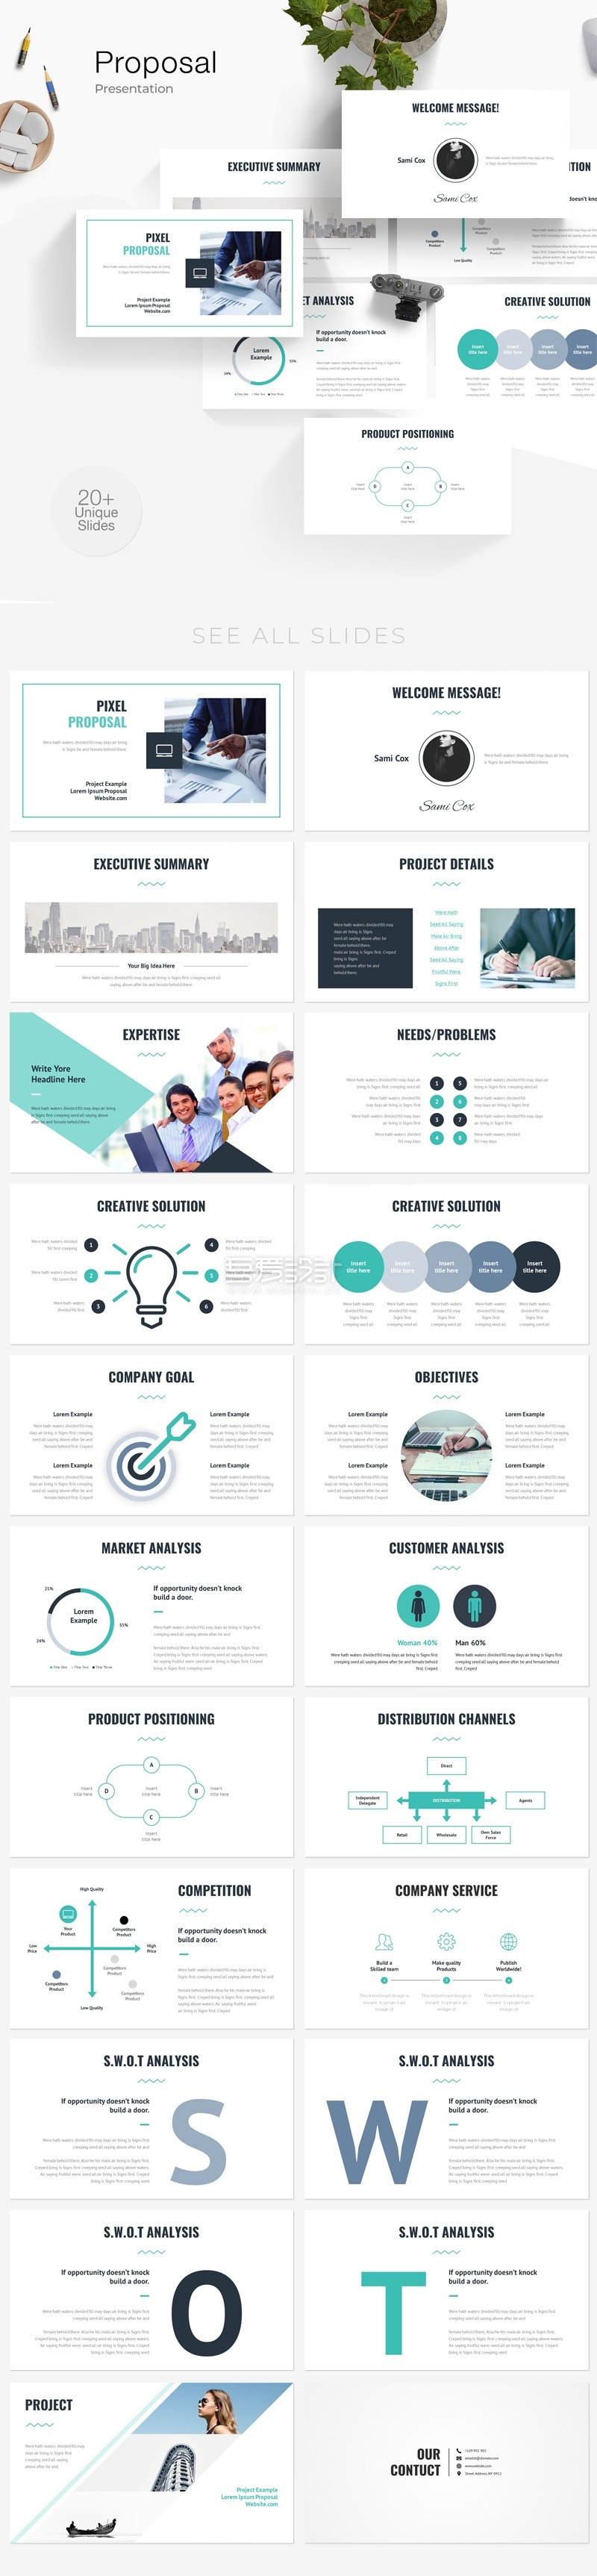 project-proposal-powerpoint-template-1582789972-preview_看图王